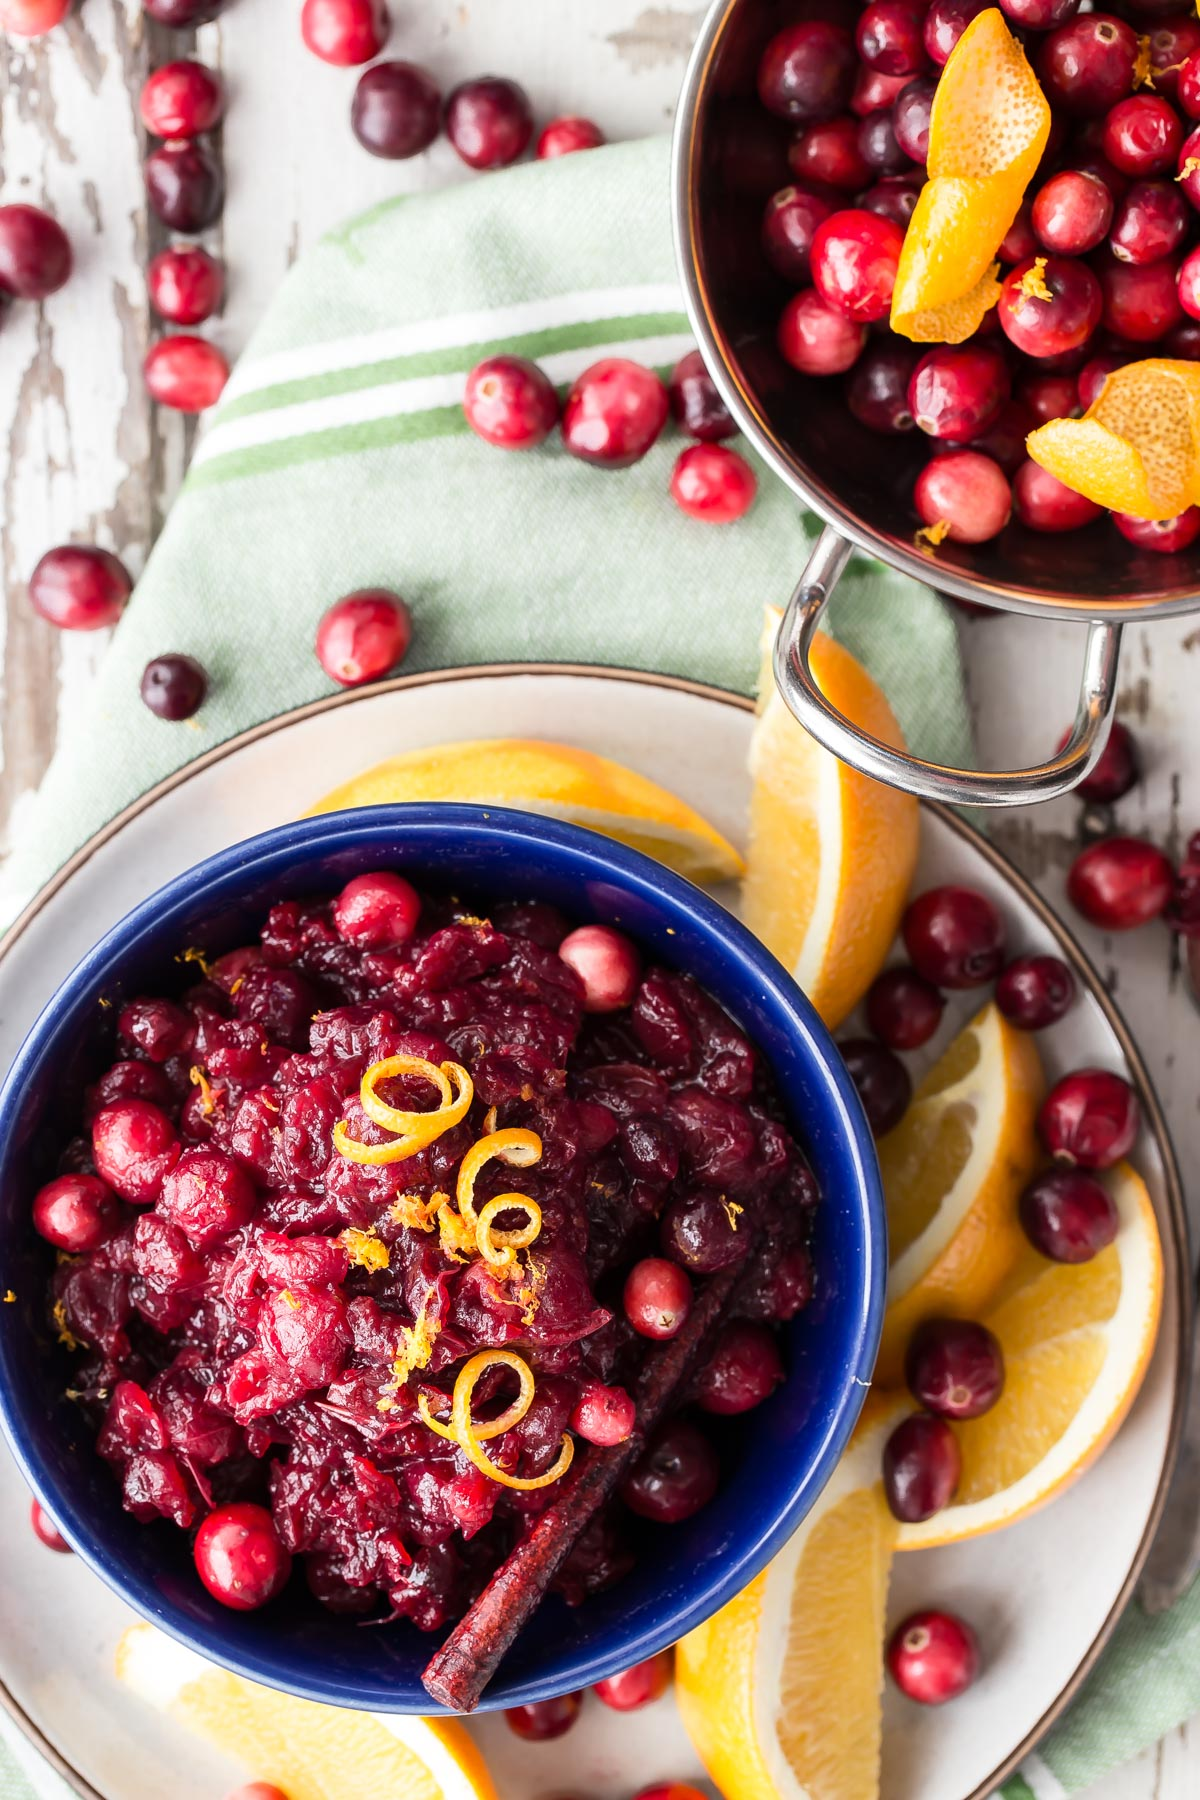 Cranberry Sauce from Weelicious.com